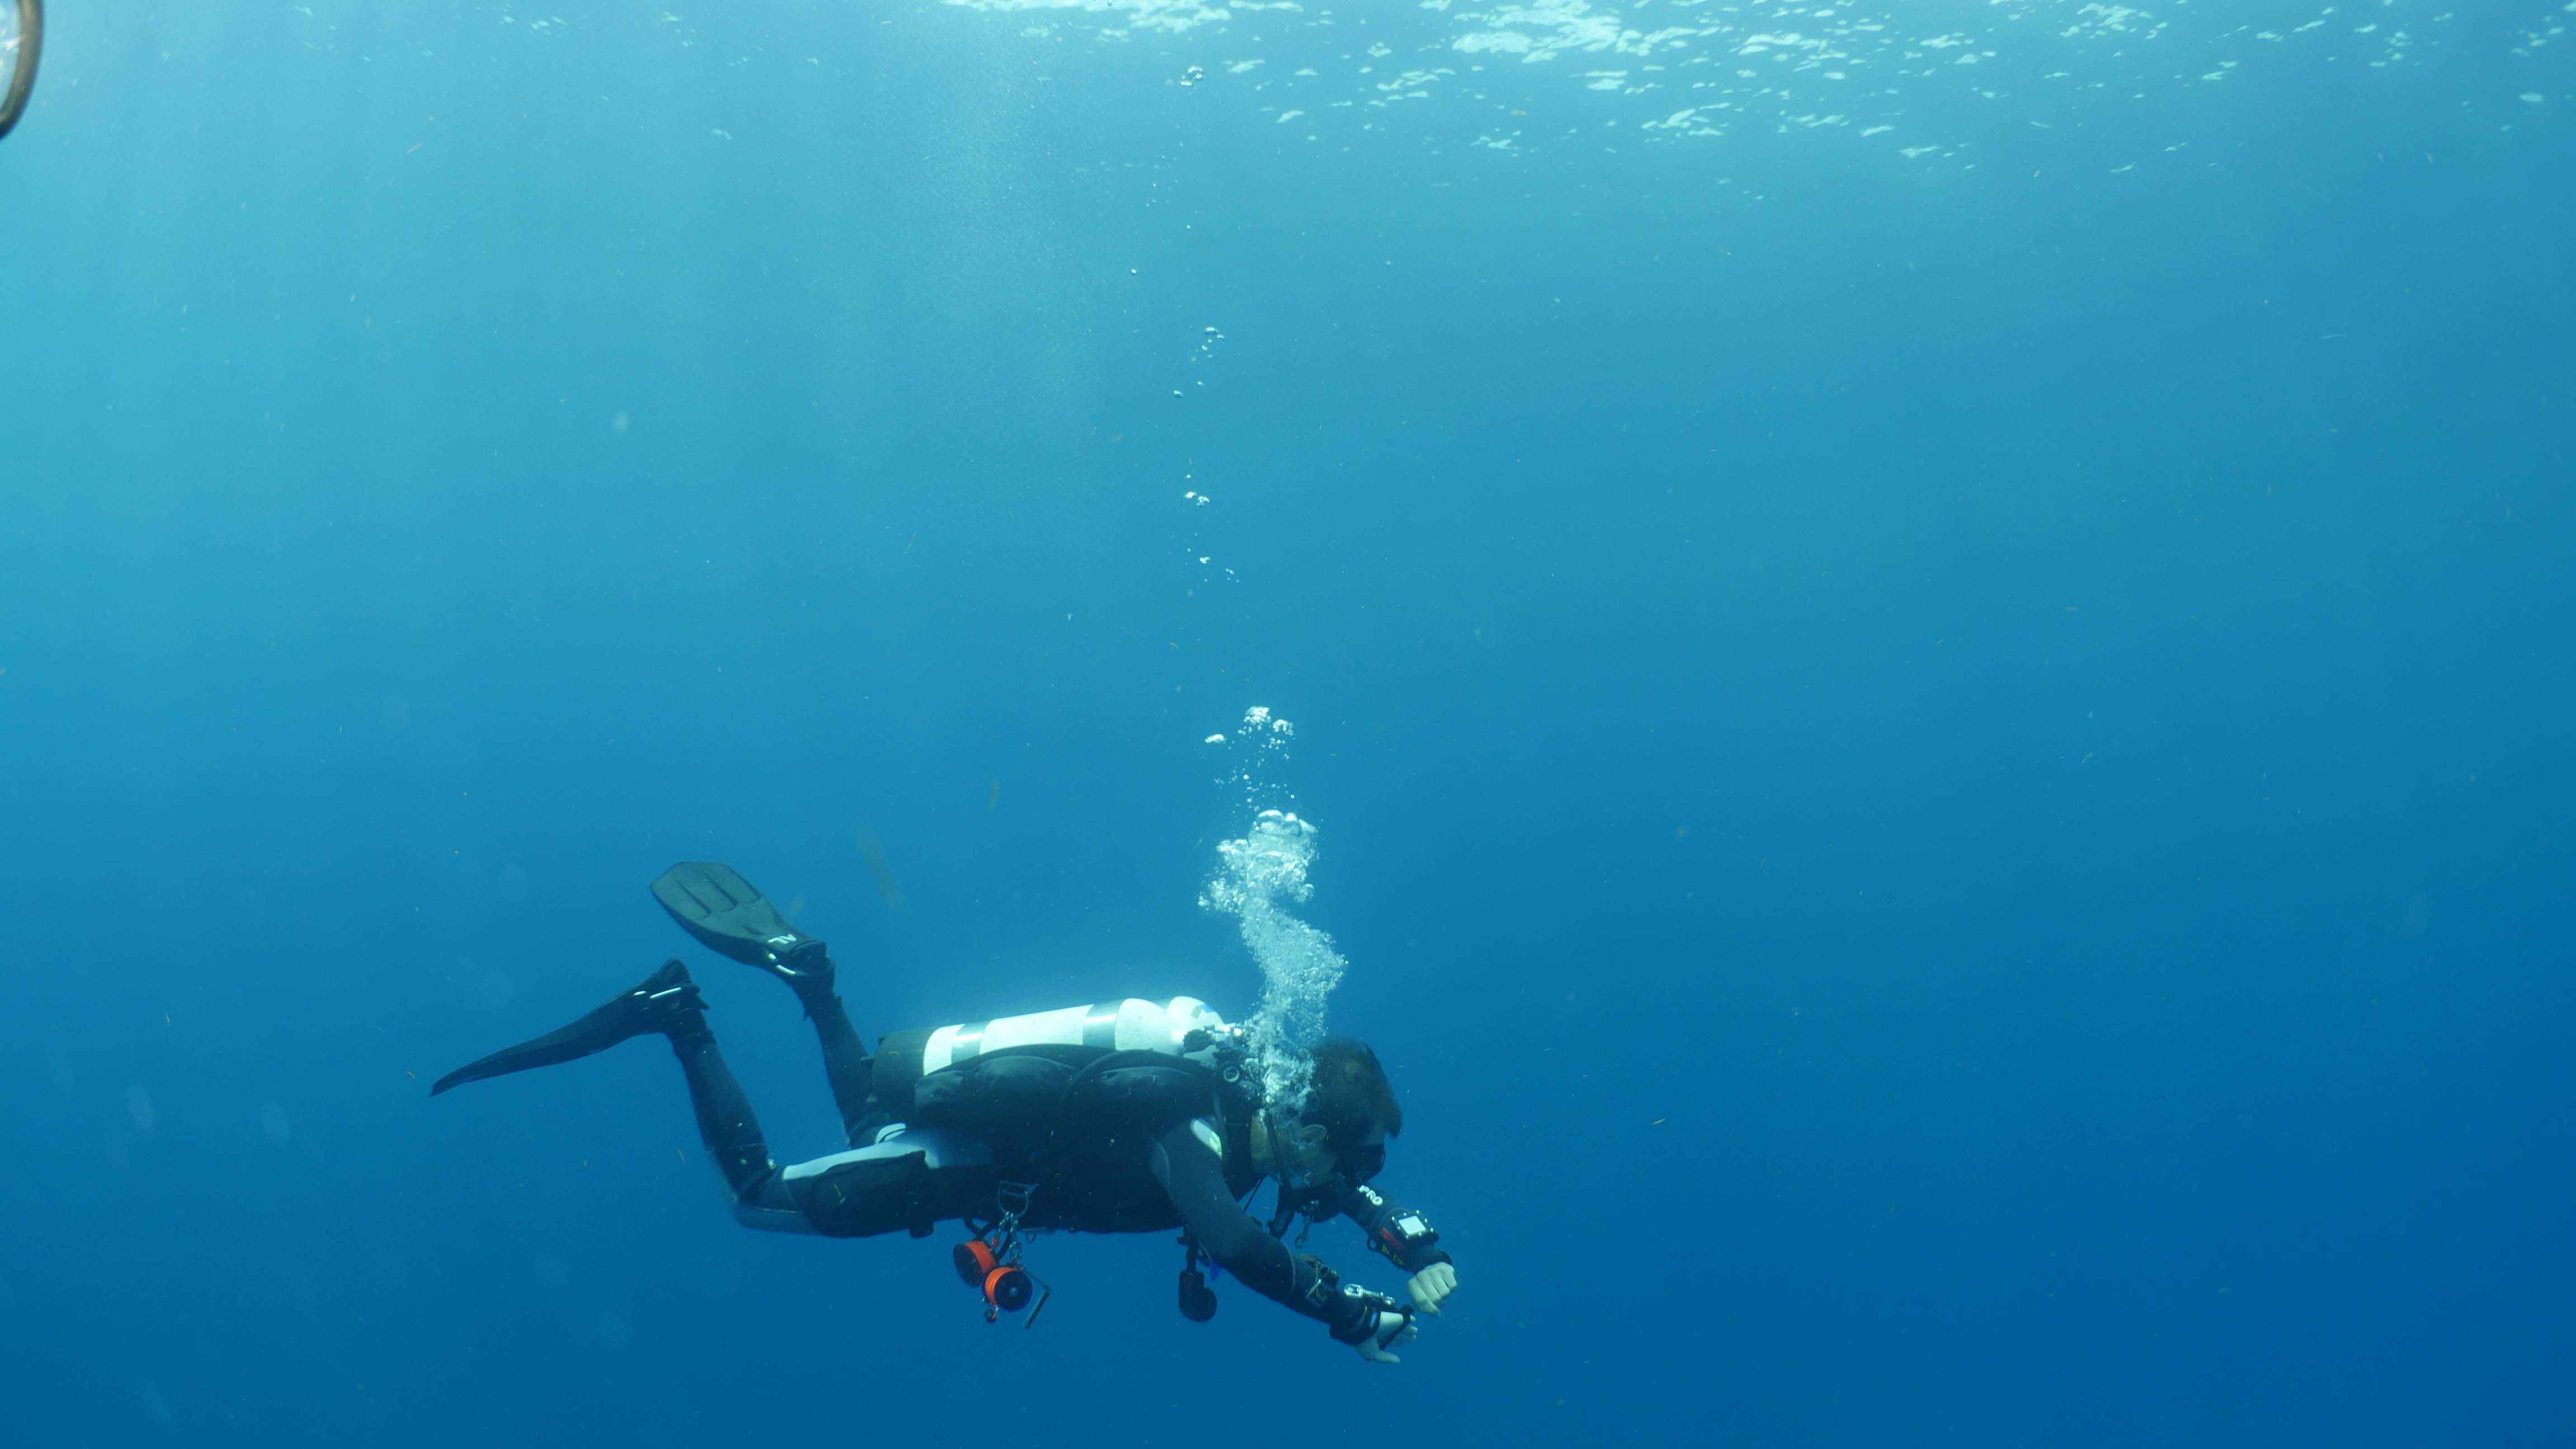 TECHNICAL DIVING - Beyond The Limits